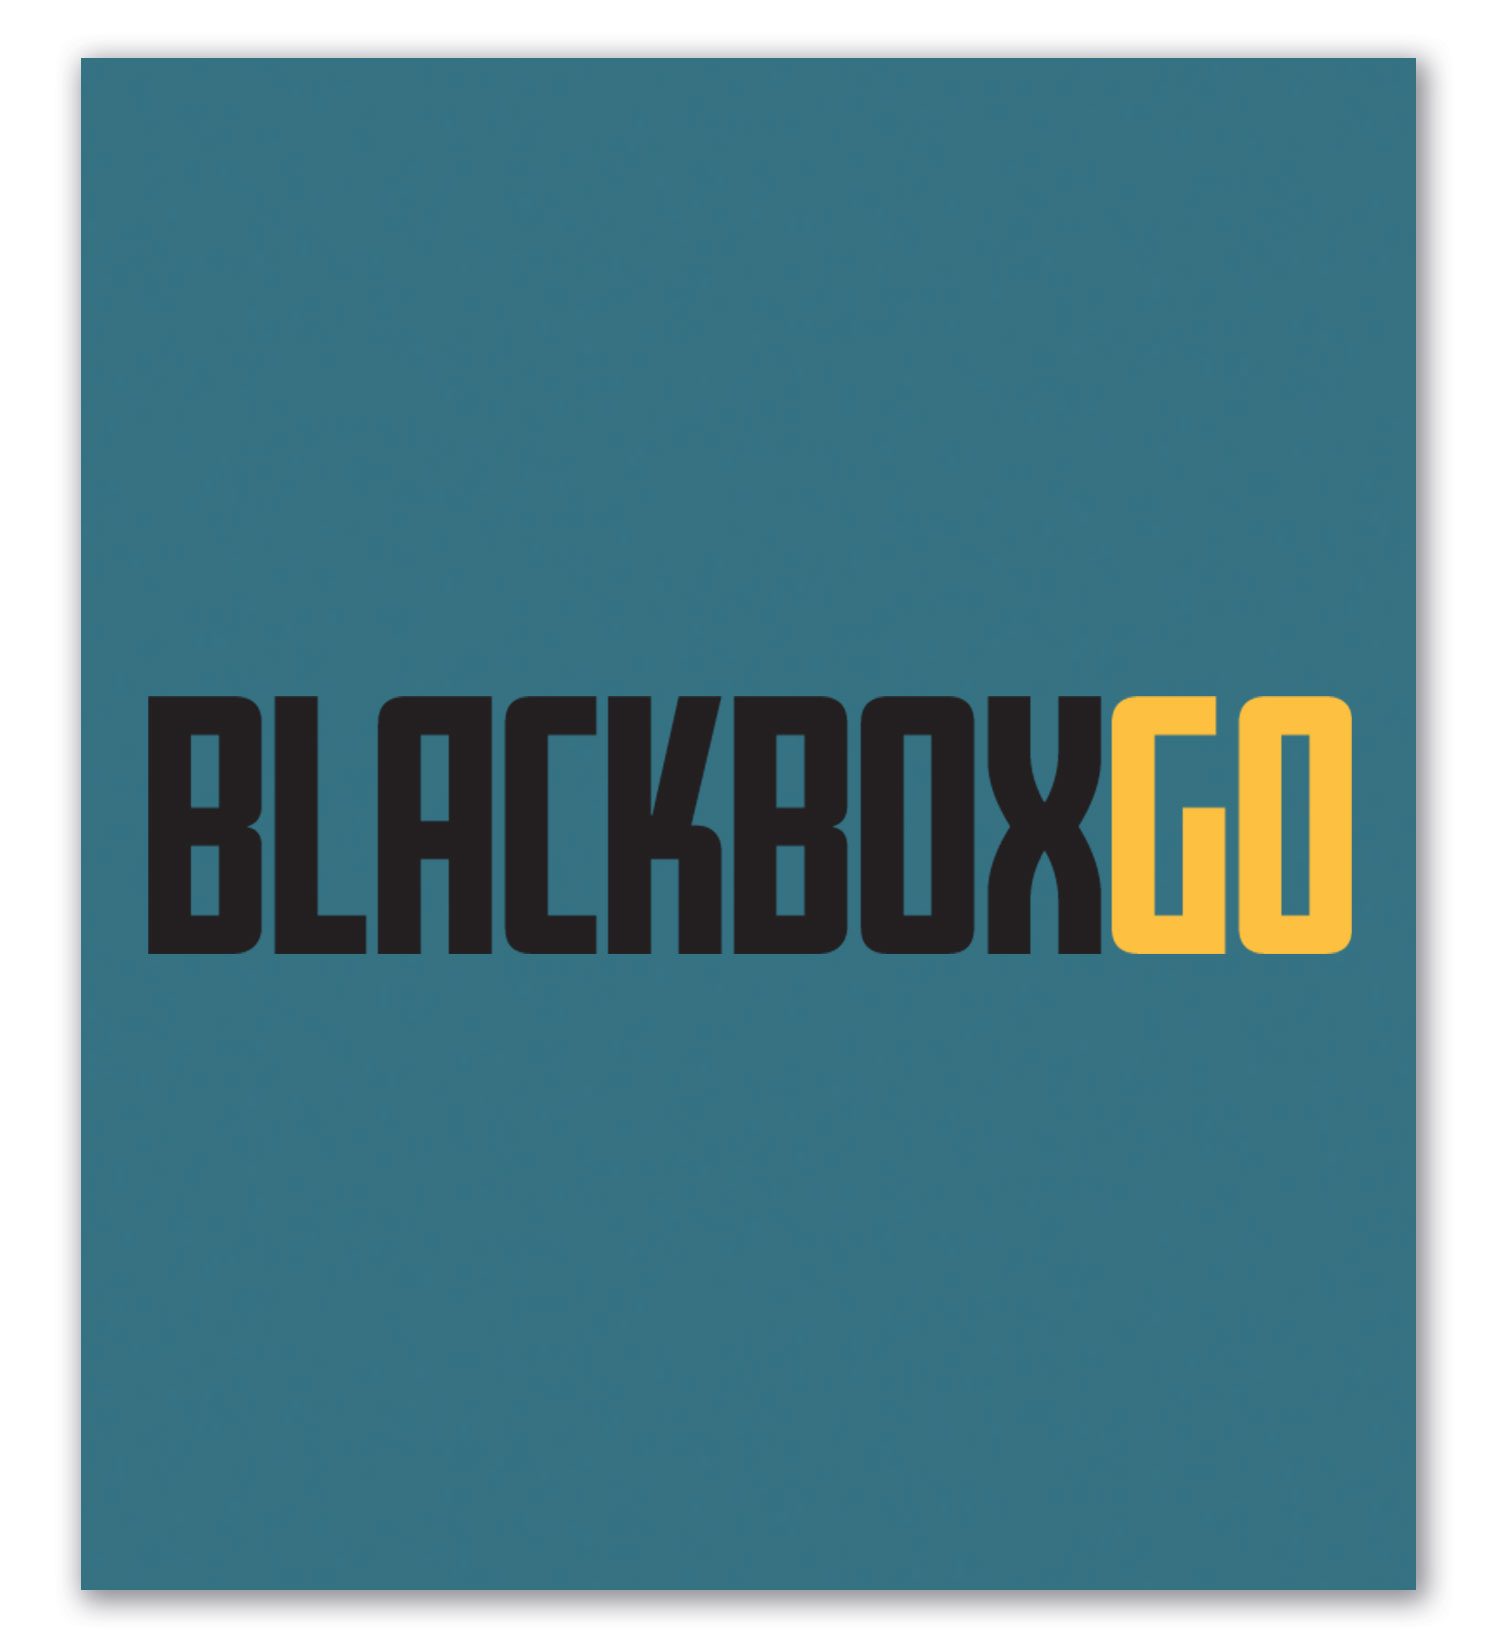 blackbox-port-img